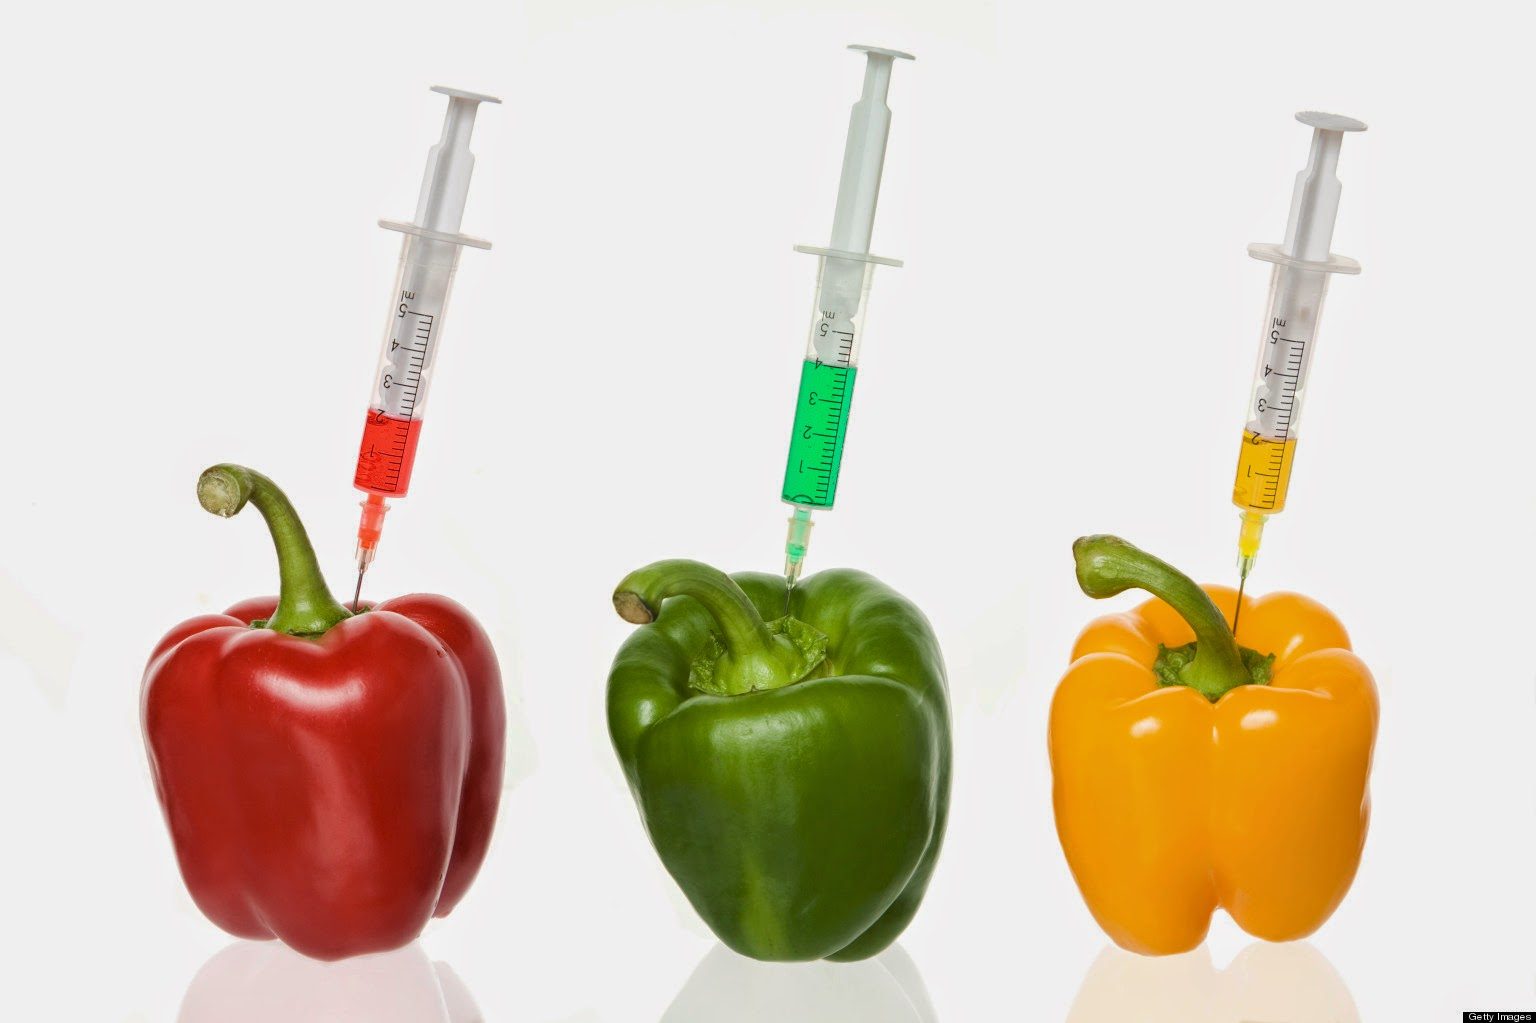 TIPS TO IMPROVE HEALTHY LIFE: Genetically Modified Foods ...